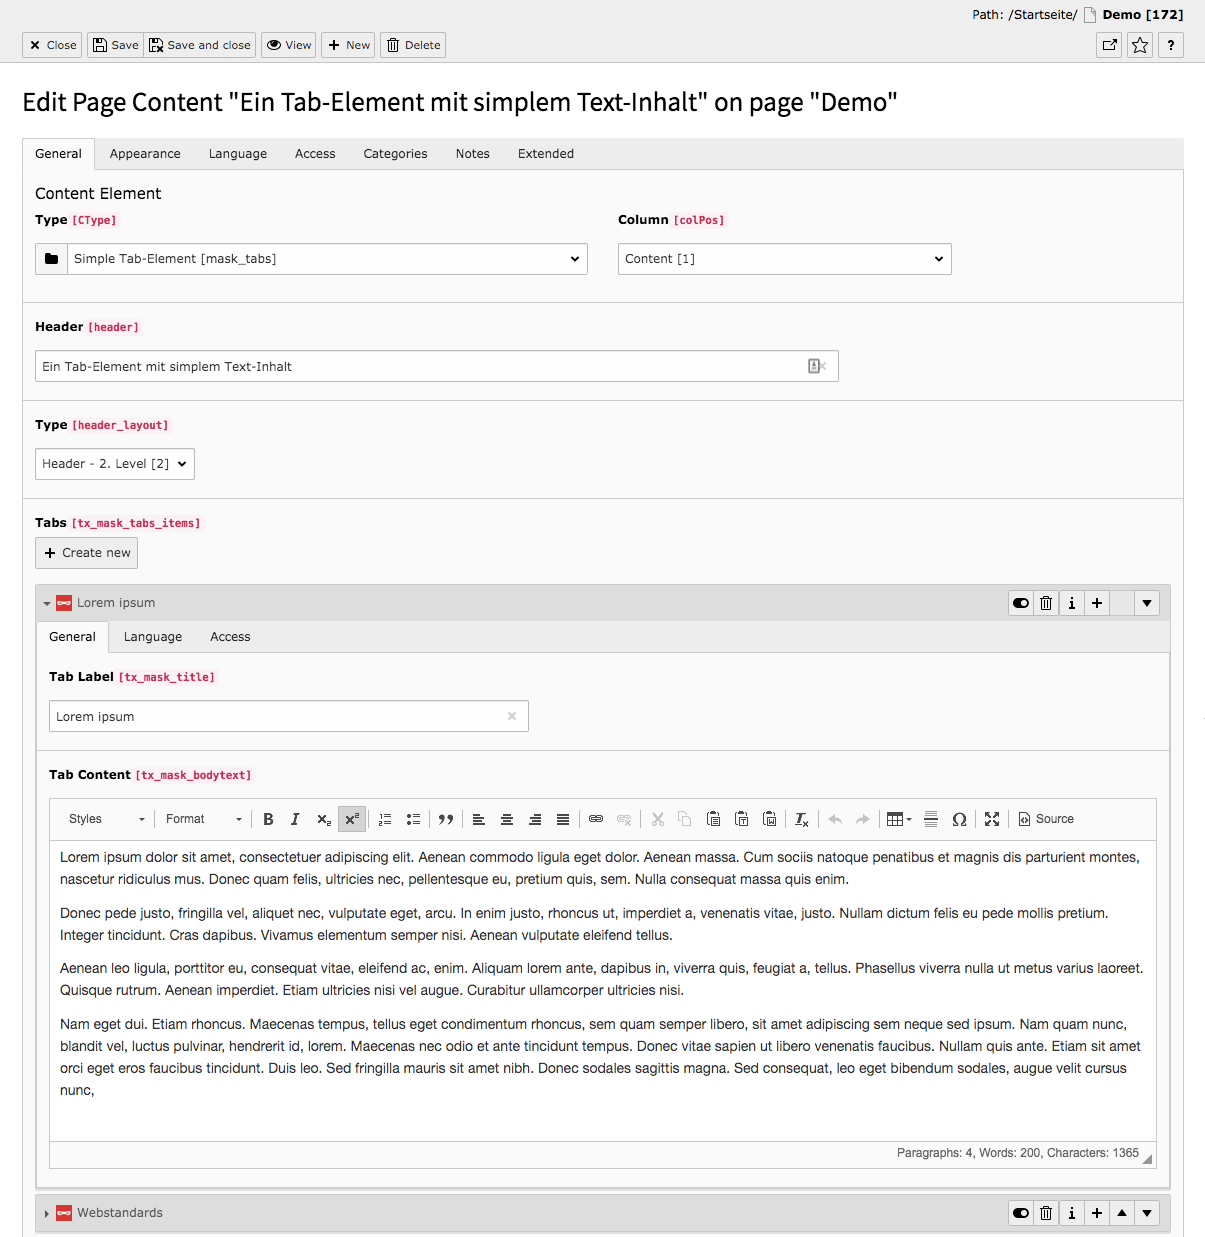 TYPO3 Content Element Mask Elements Simple Tab-Element Backend Tab General